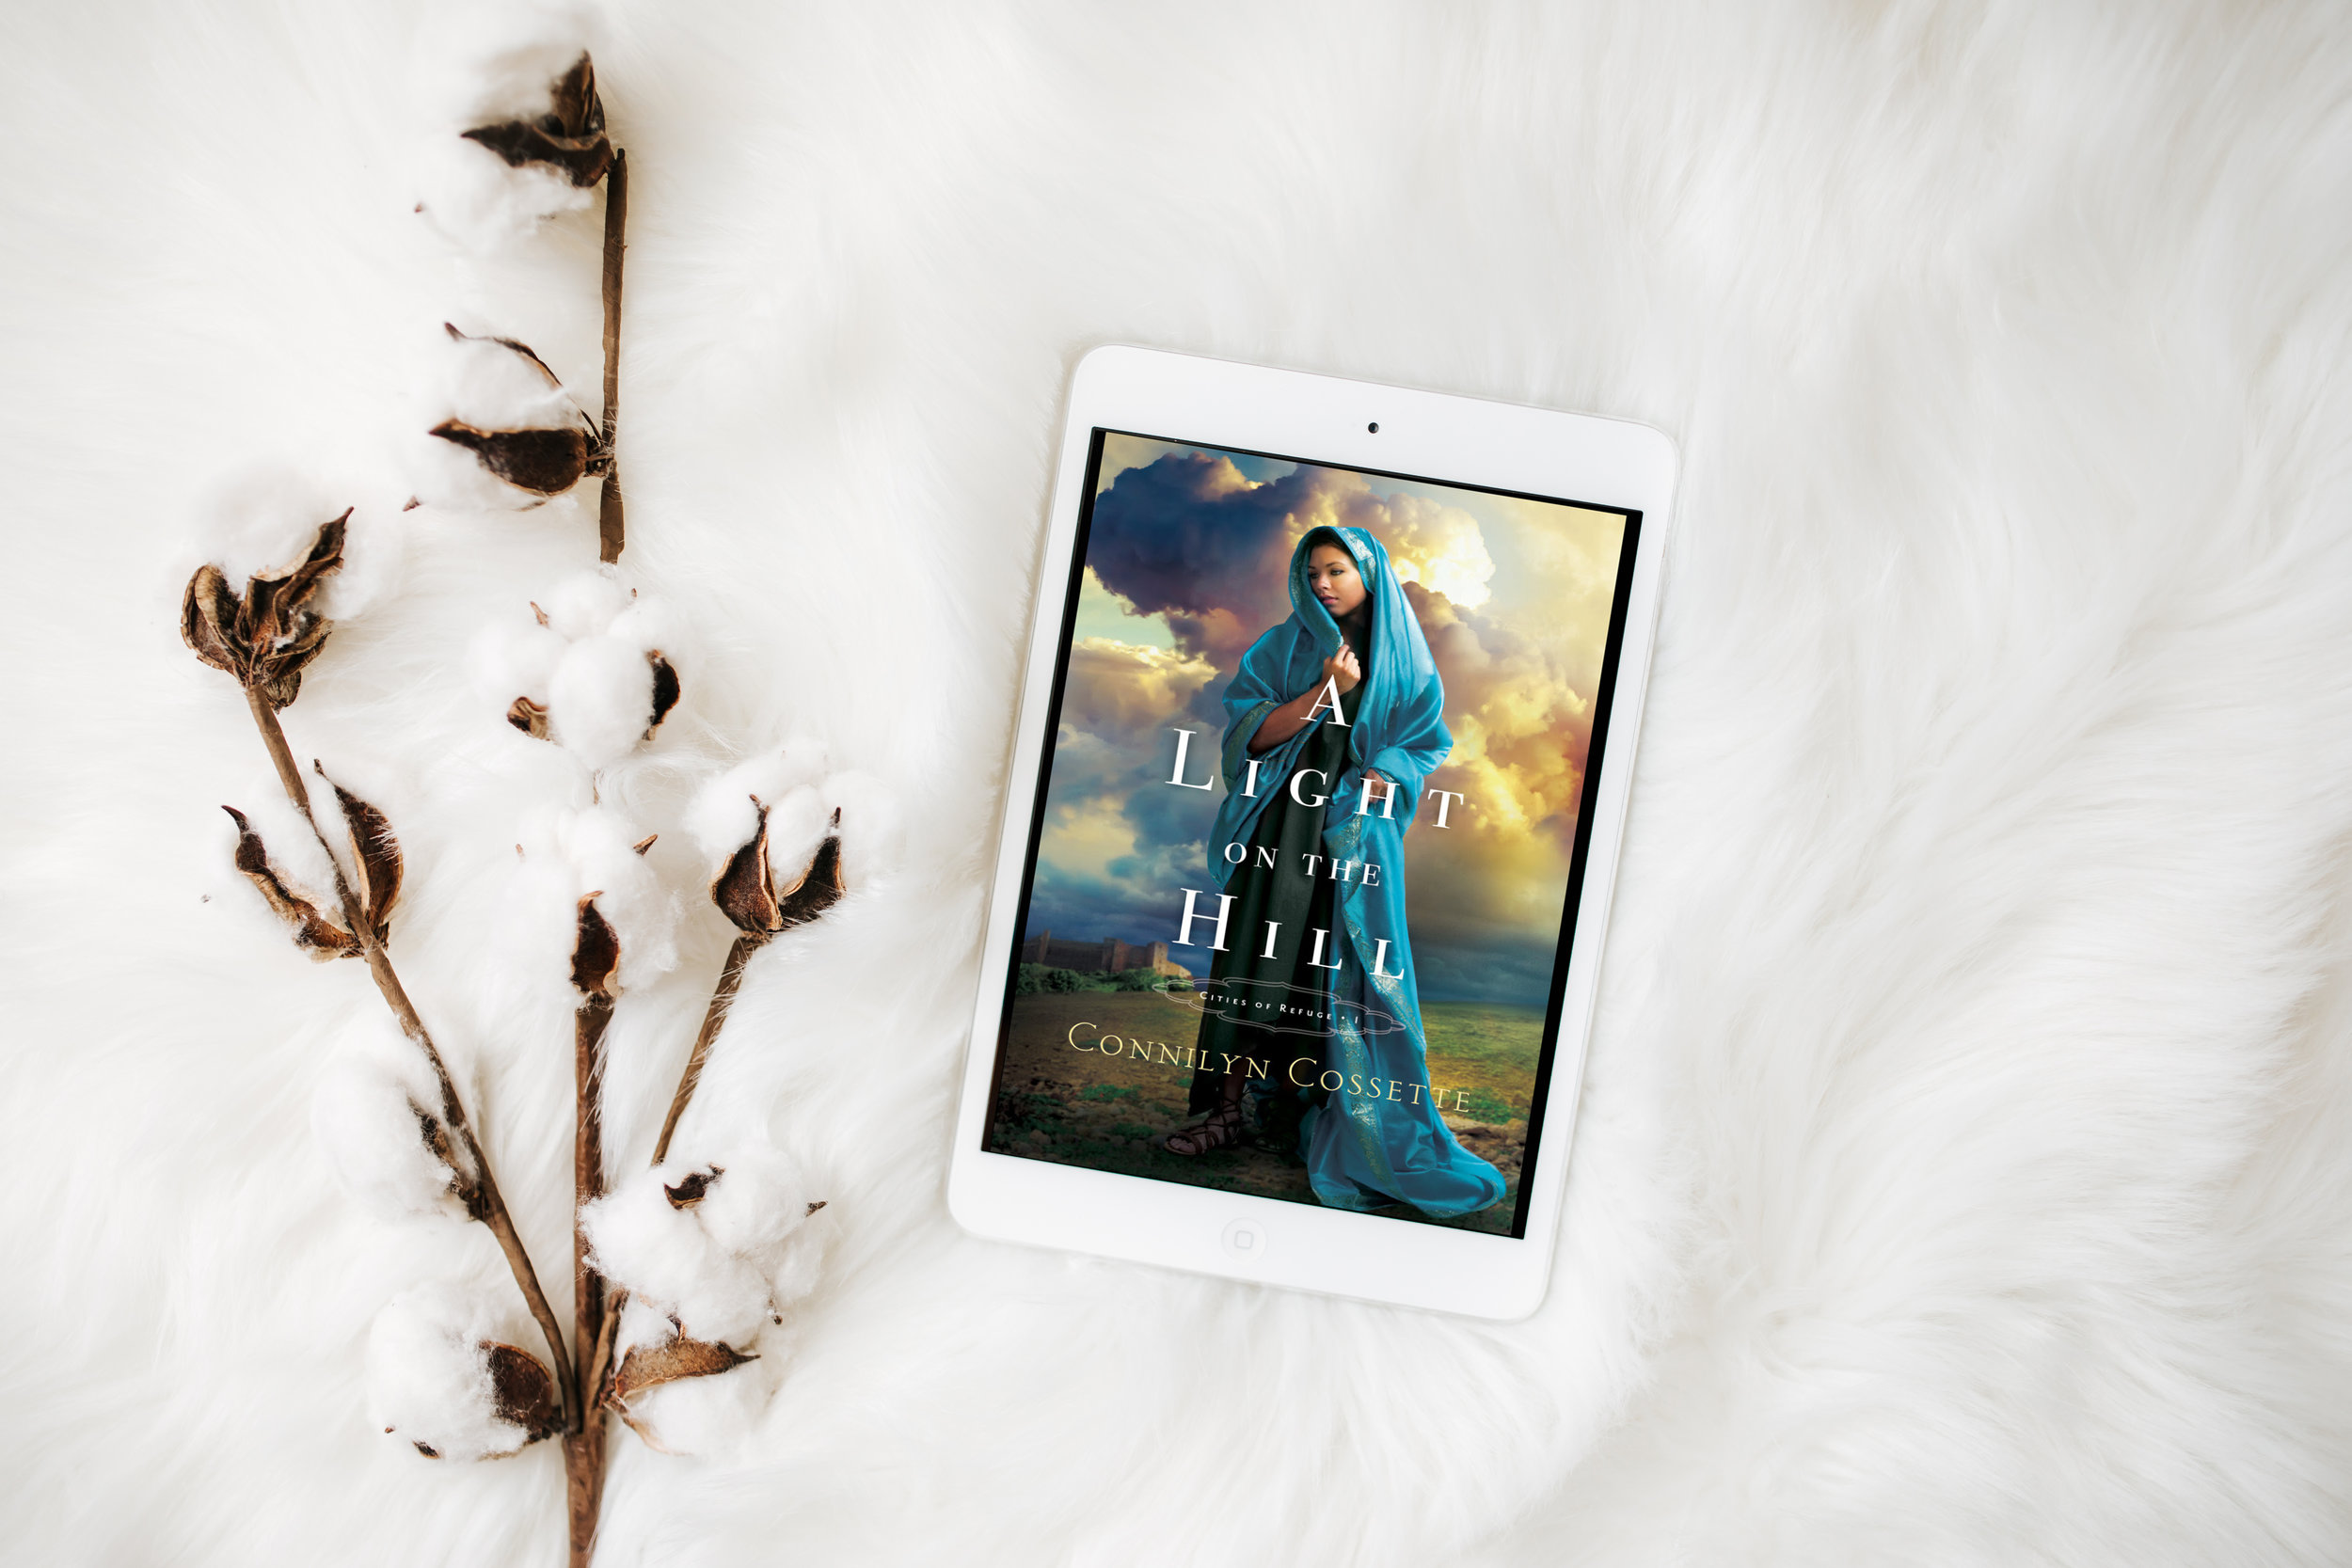 light on the hill connilyn cossette book review